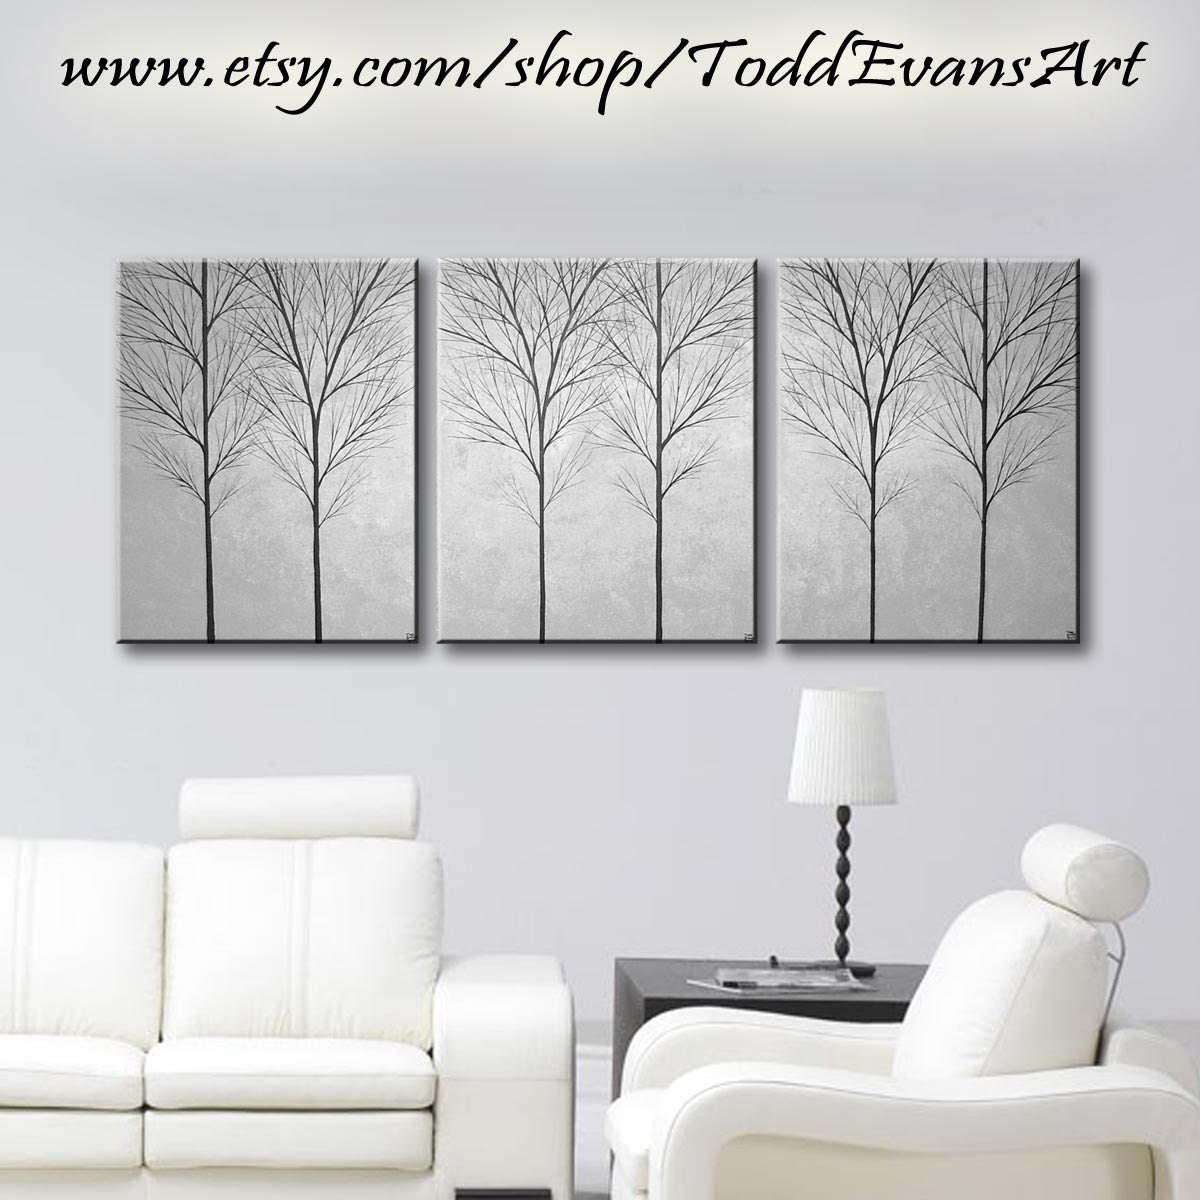 sale wall art canvas painting large tree art wall decor home decor wall hangings trees gray